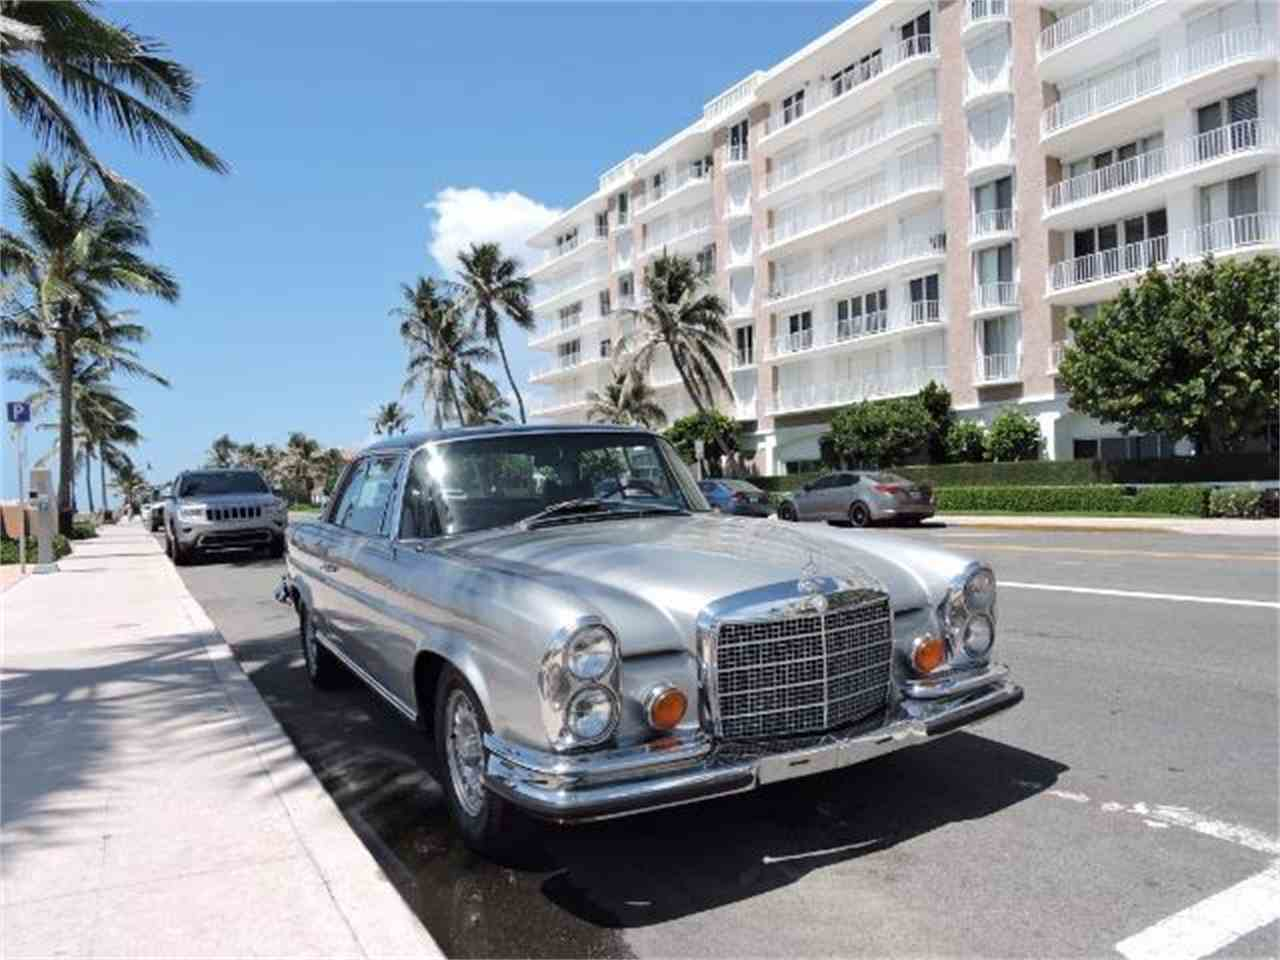 1970 mercedes benz 200 series 280se for sale classiccars for Mercedes benz delray beach florida